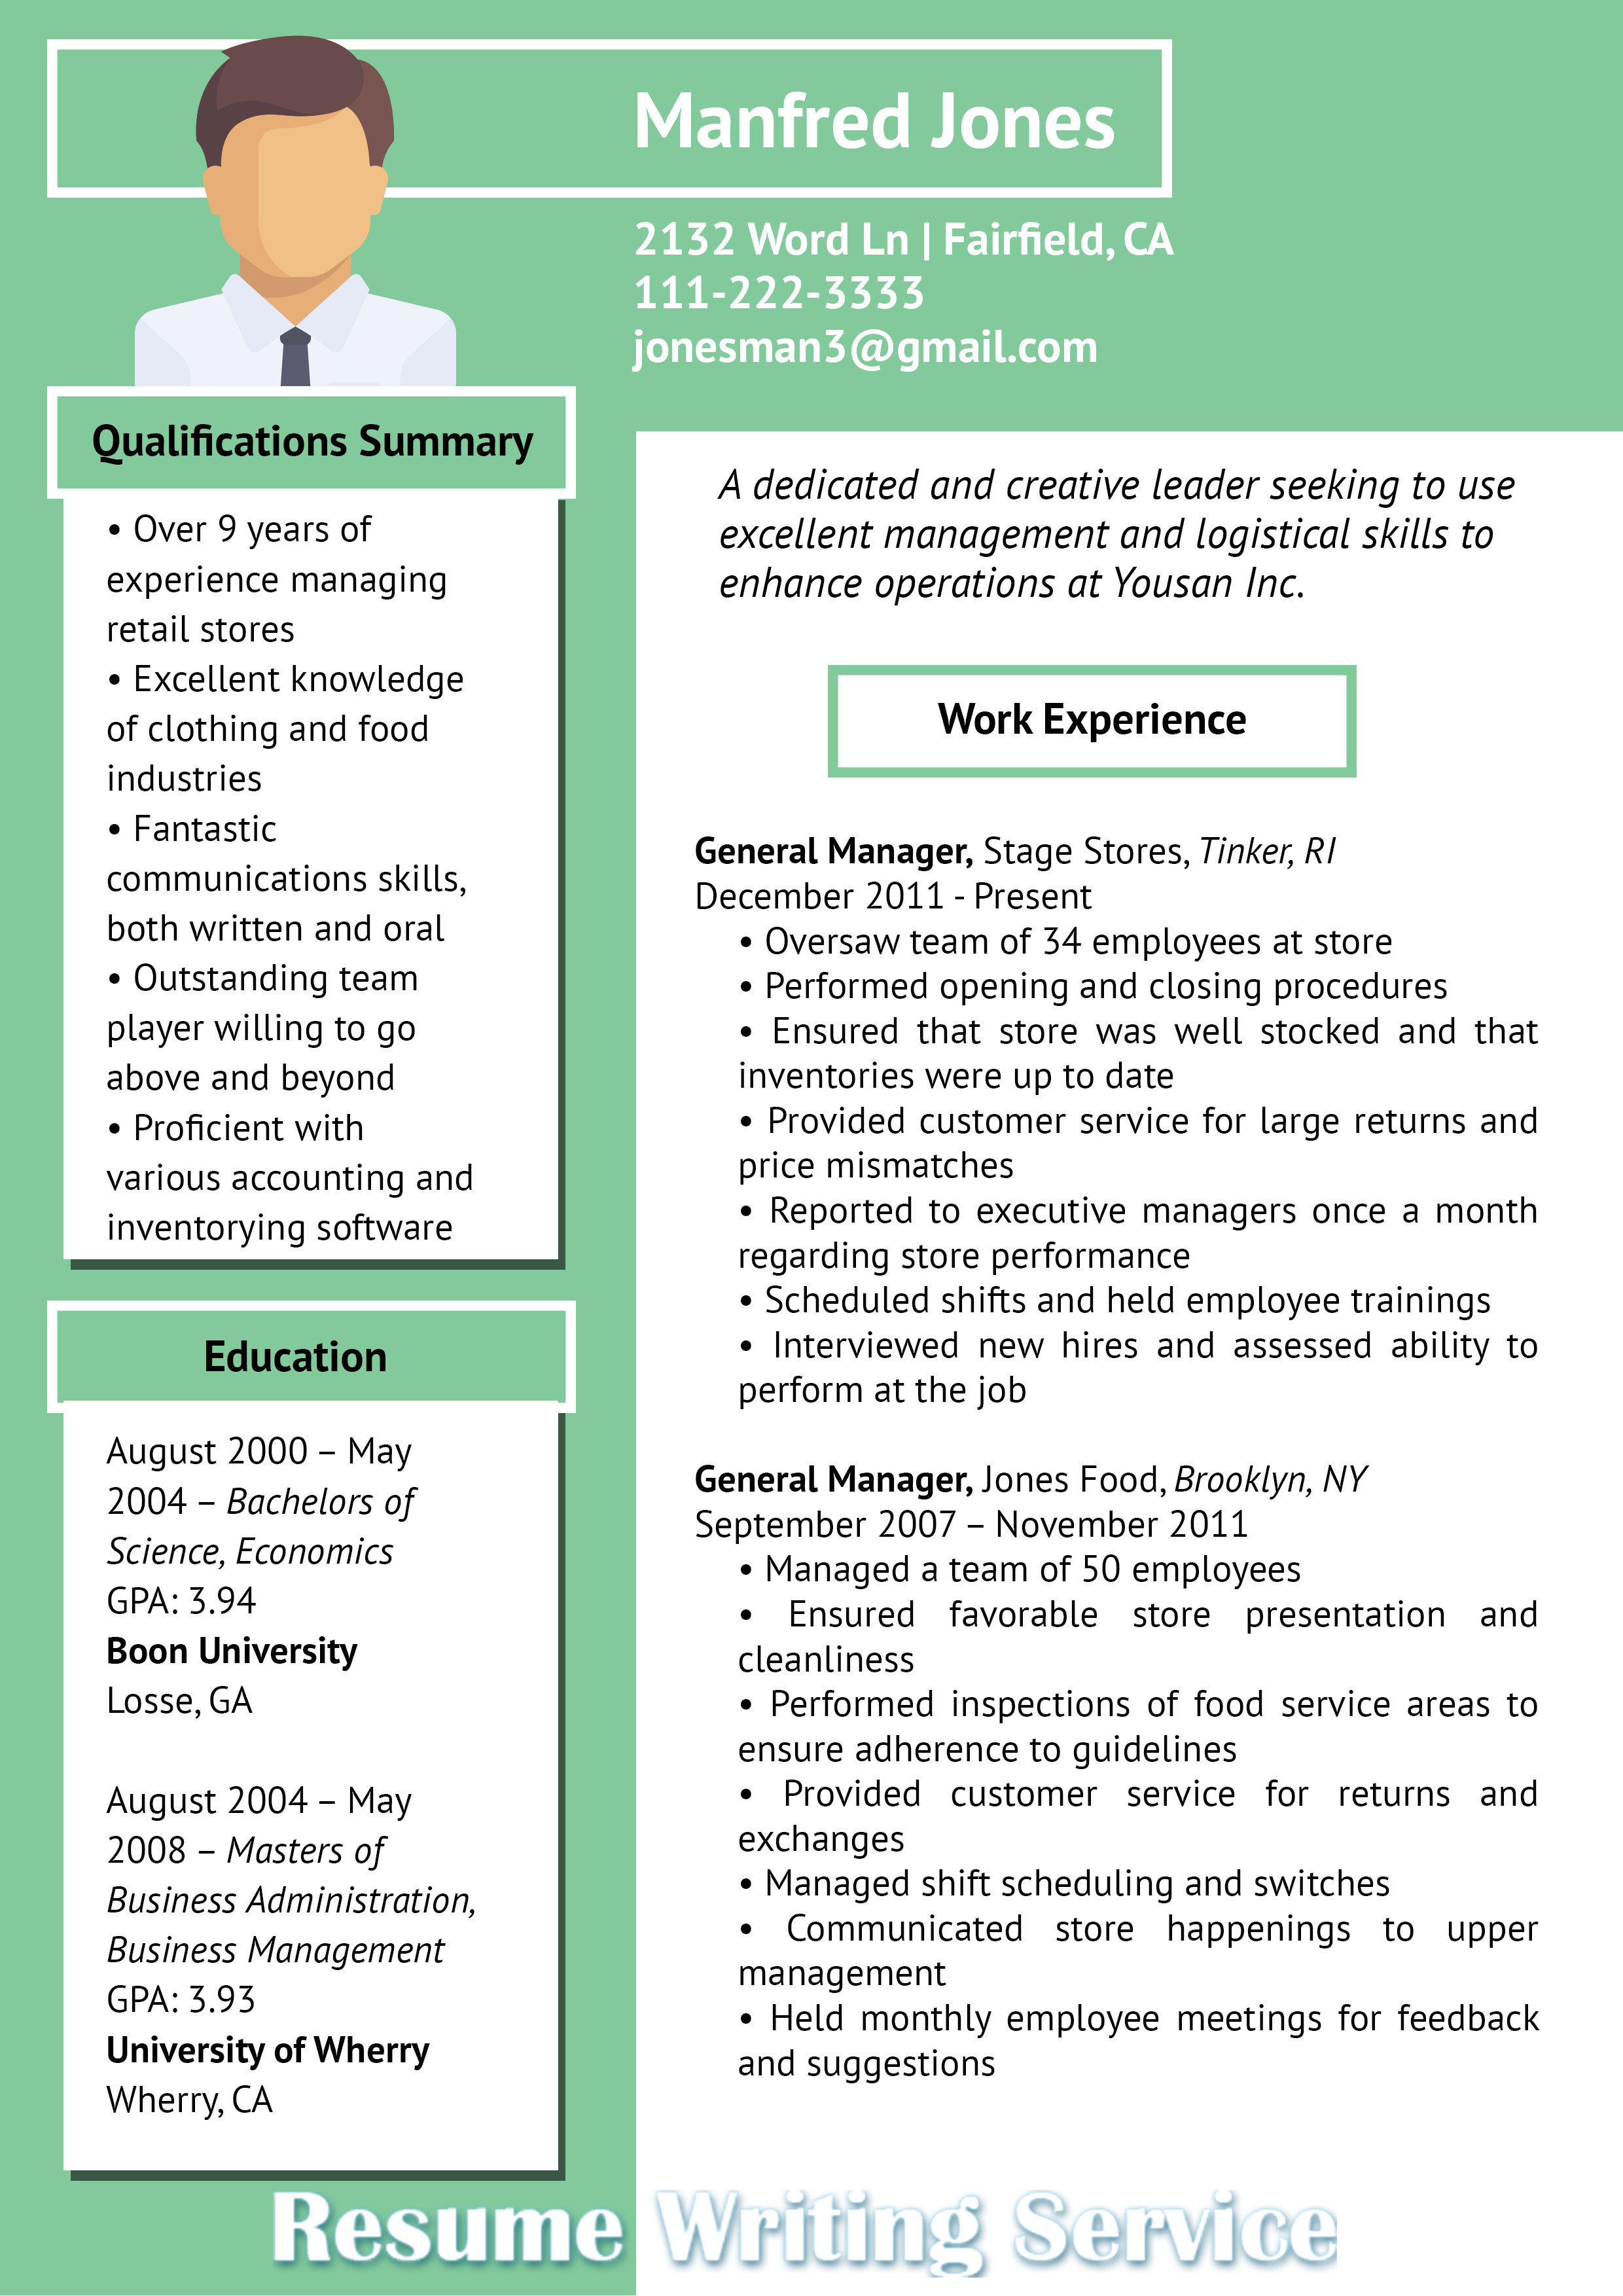 update your resume and cover letter